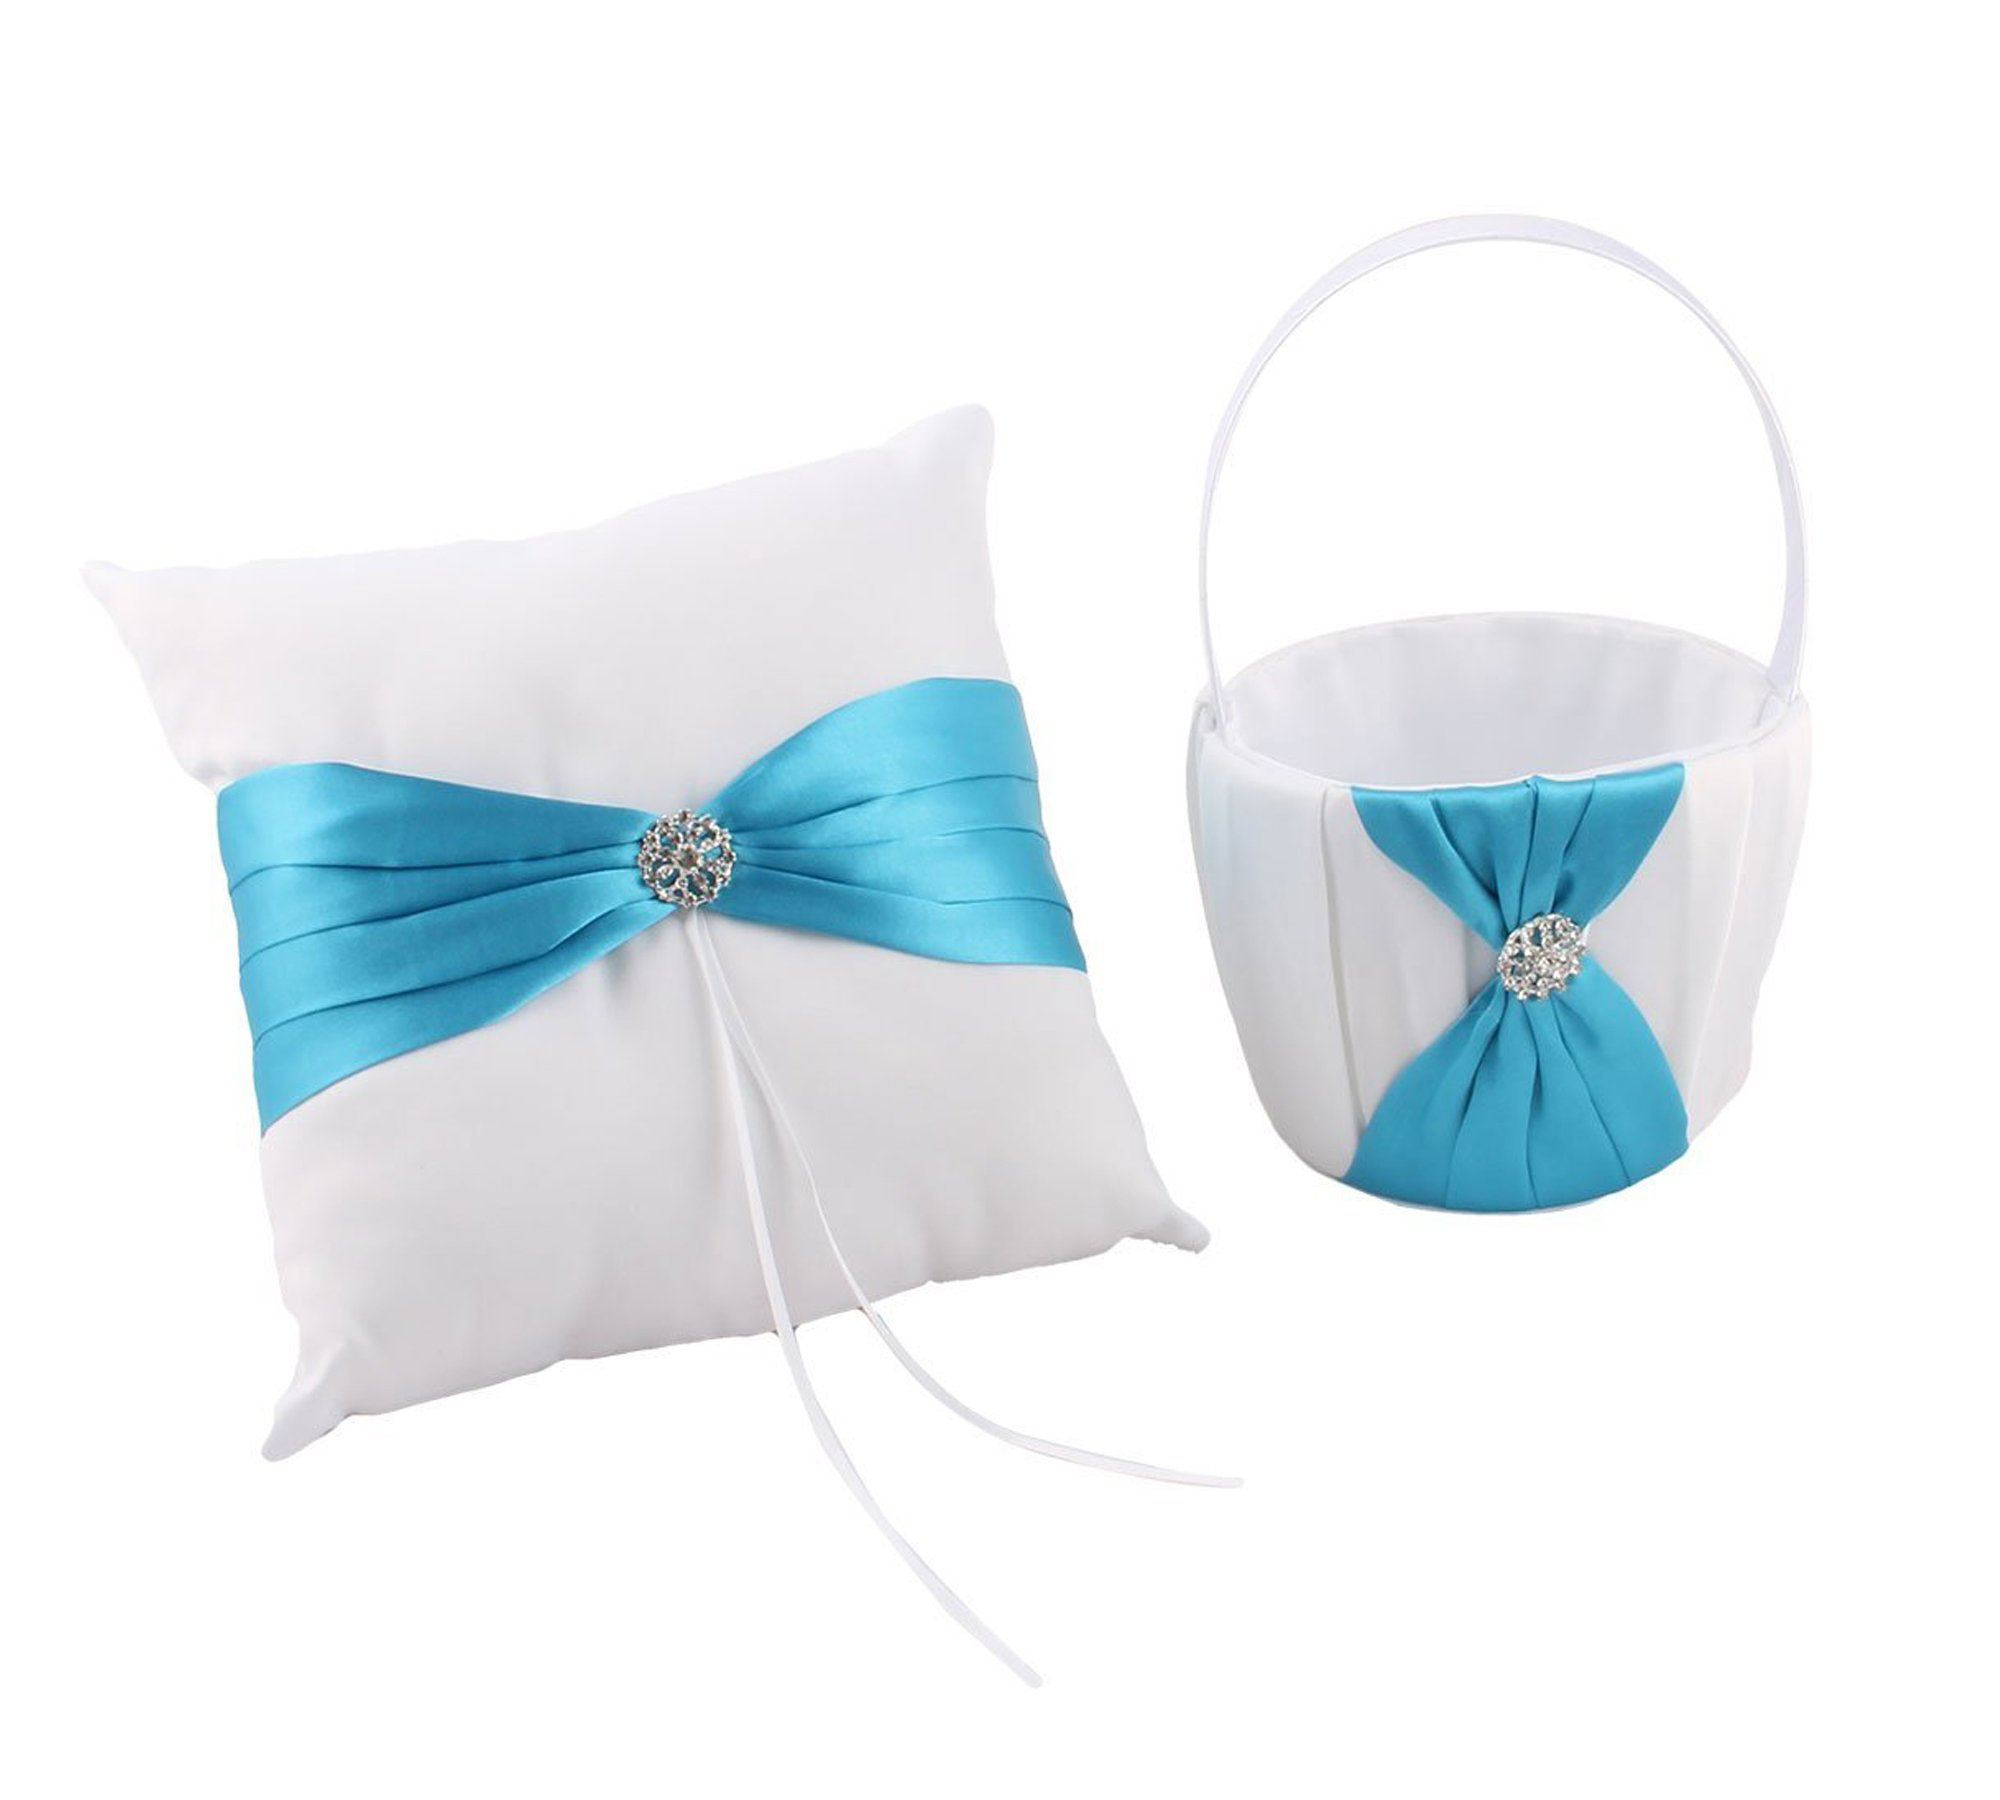 Antrader Romantic Satin Butterfly Knot Decor Petals Storage Flower Container Basket Ring Pillow Set for Wedding Anniversary Celebrations Party Decoration (Blue)